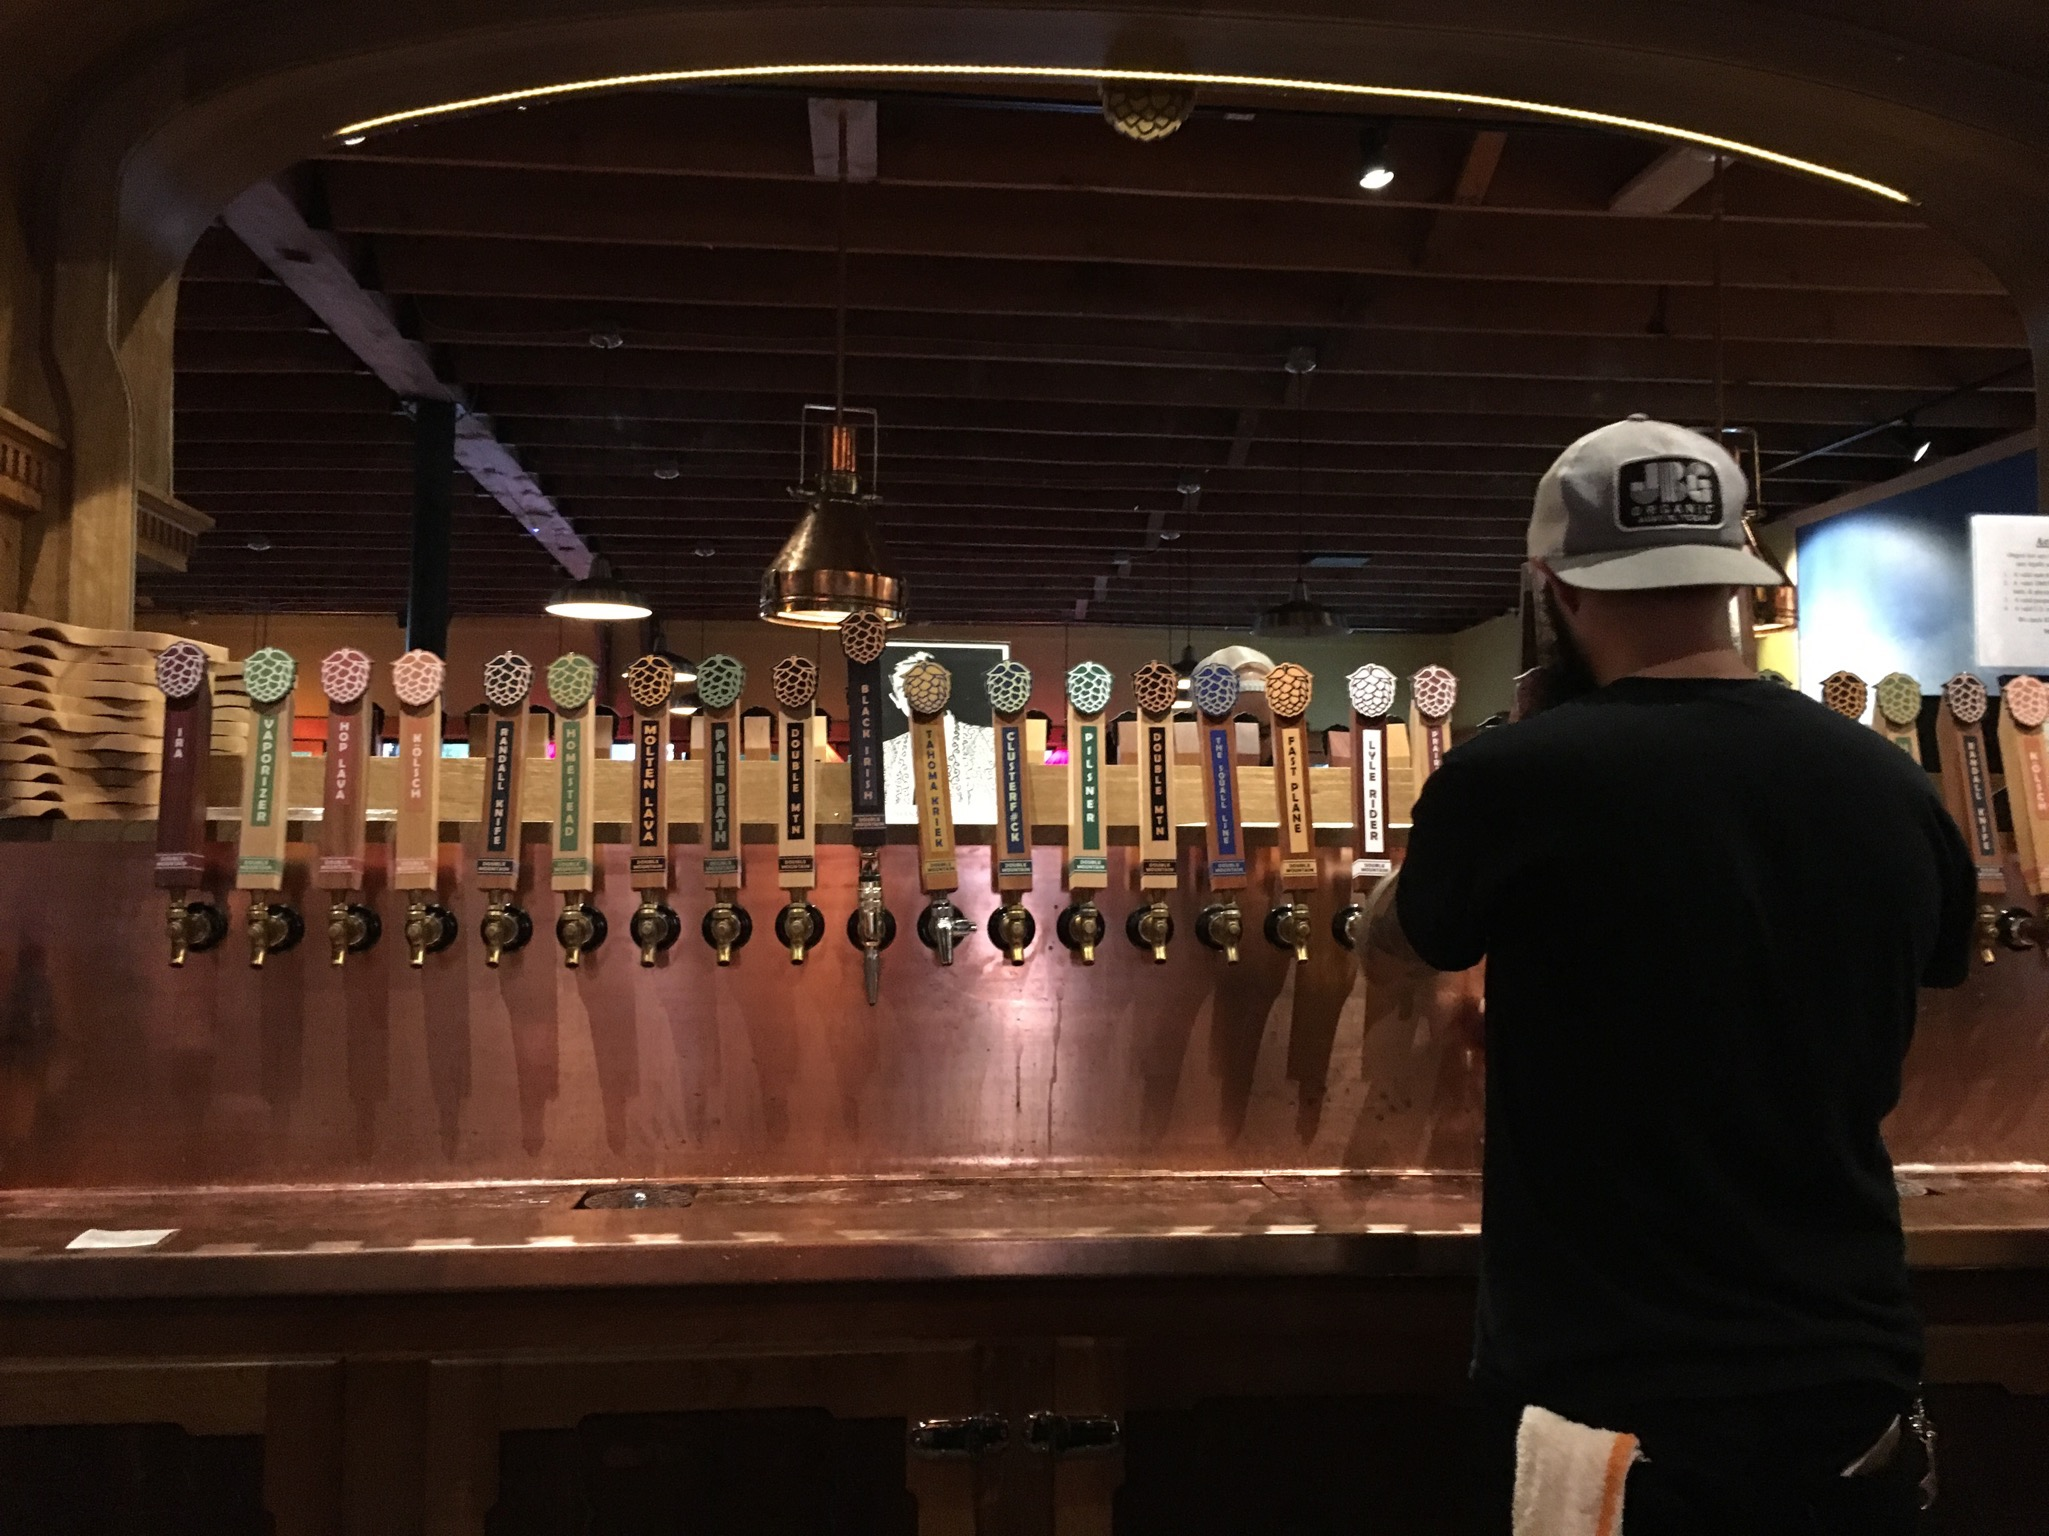 A lineup of 30 tap handles at Double Mountain Taproom in Portland, Oregon. (photo by Cat Stelzer)